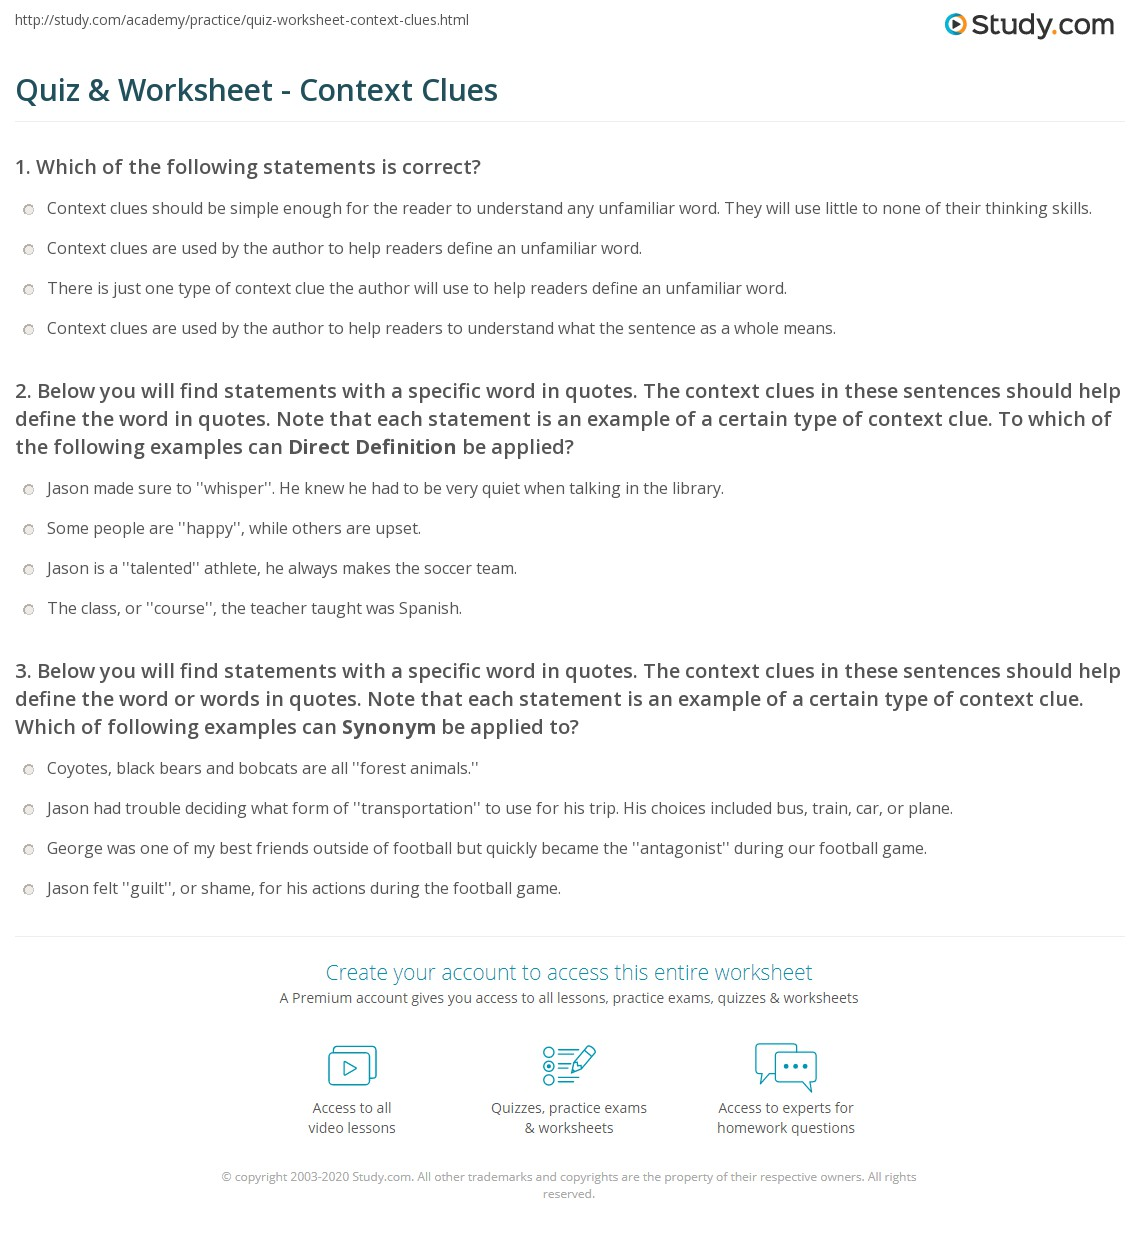 Free Worksheet Context Clues Worksheets 3rd Grade quiz worksheet context clues study com 1 below you will find statements with a specific word in quotes the these sentences should help define note that each statem